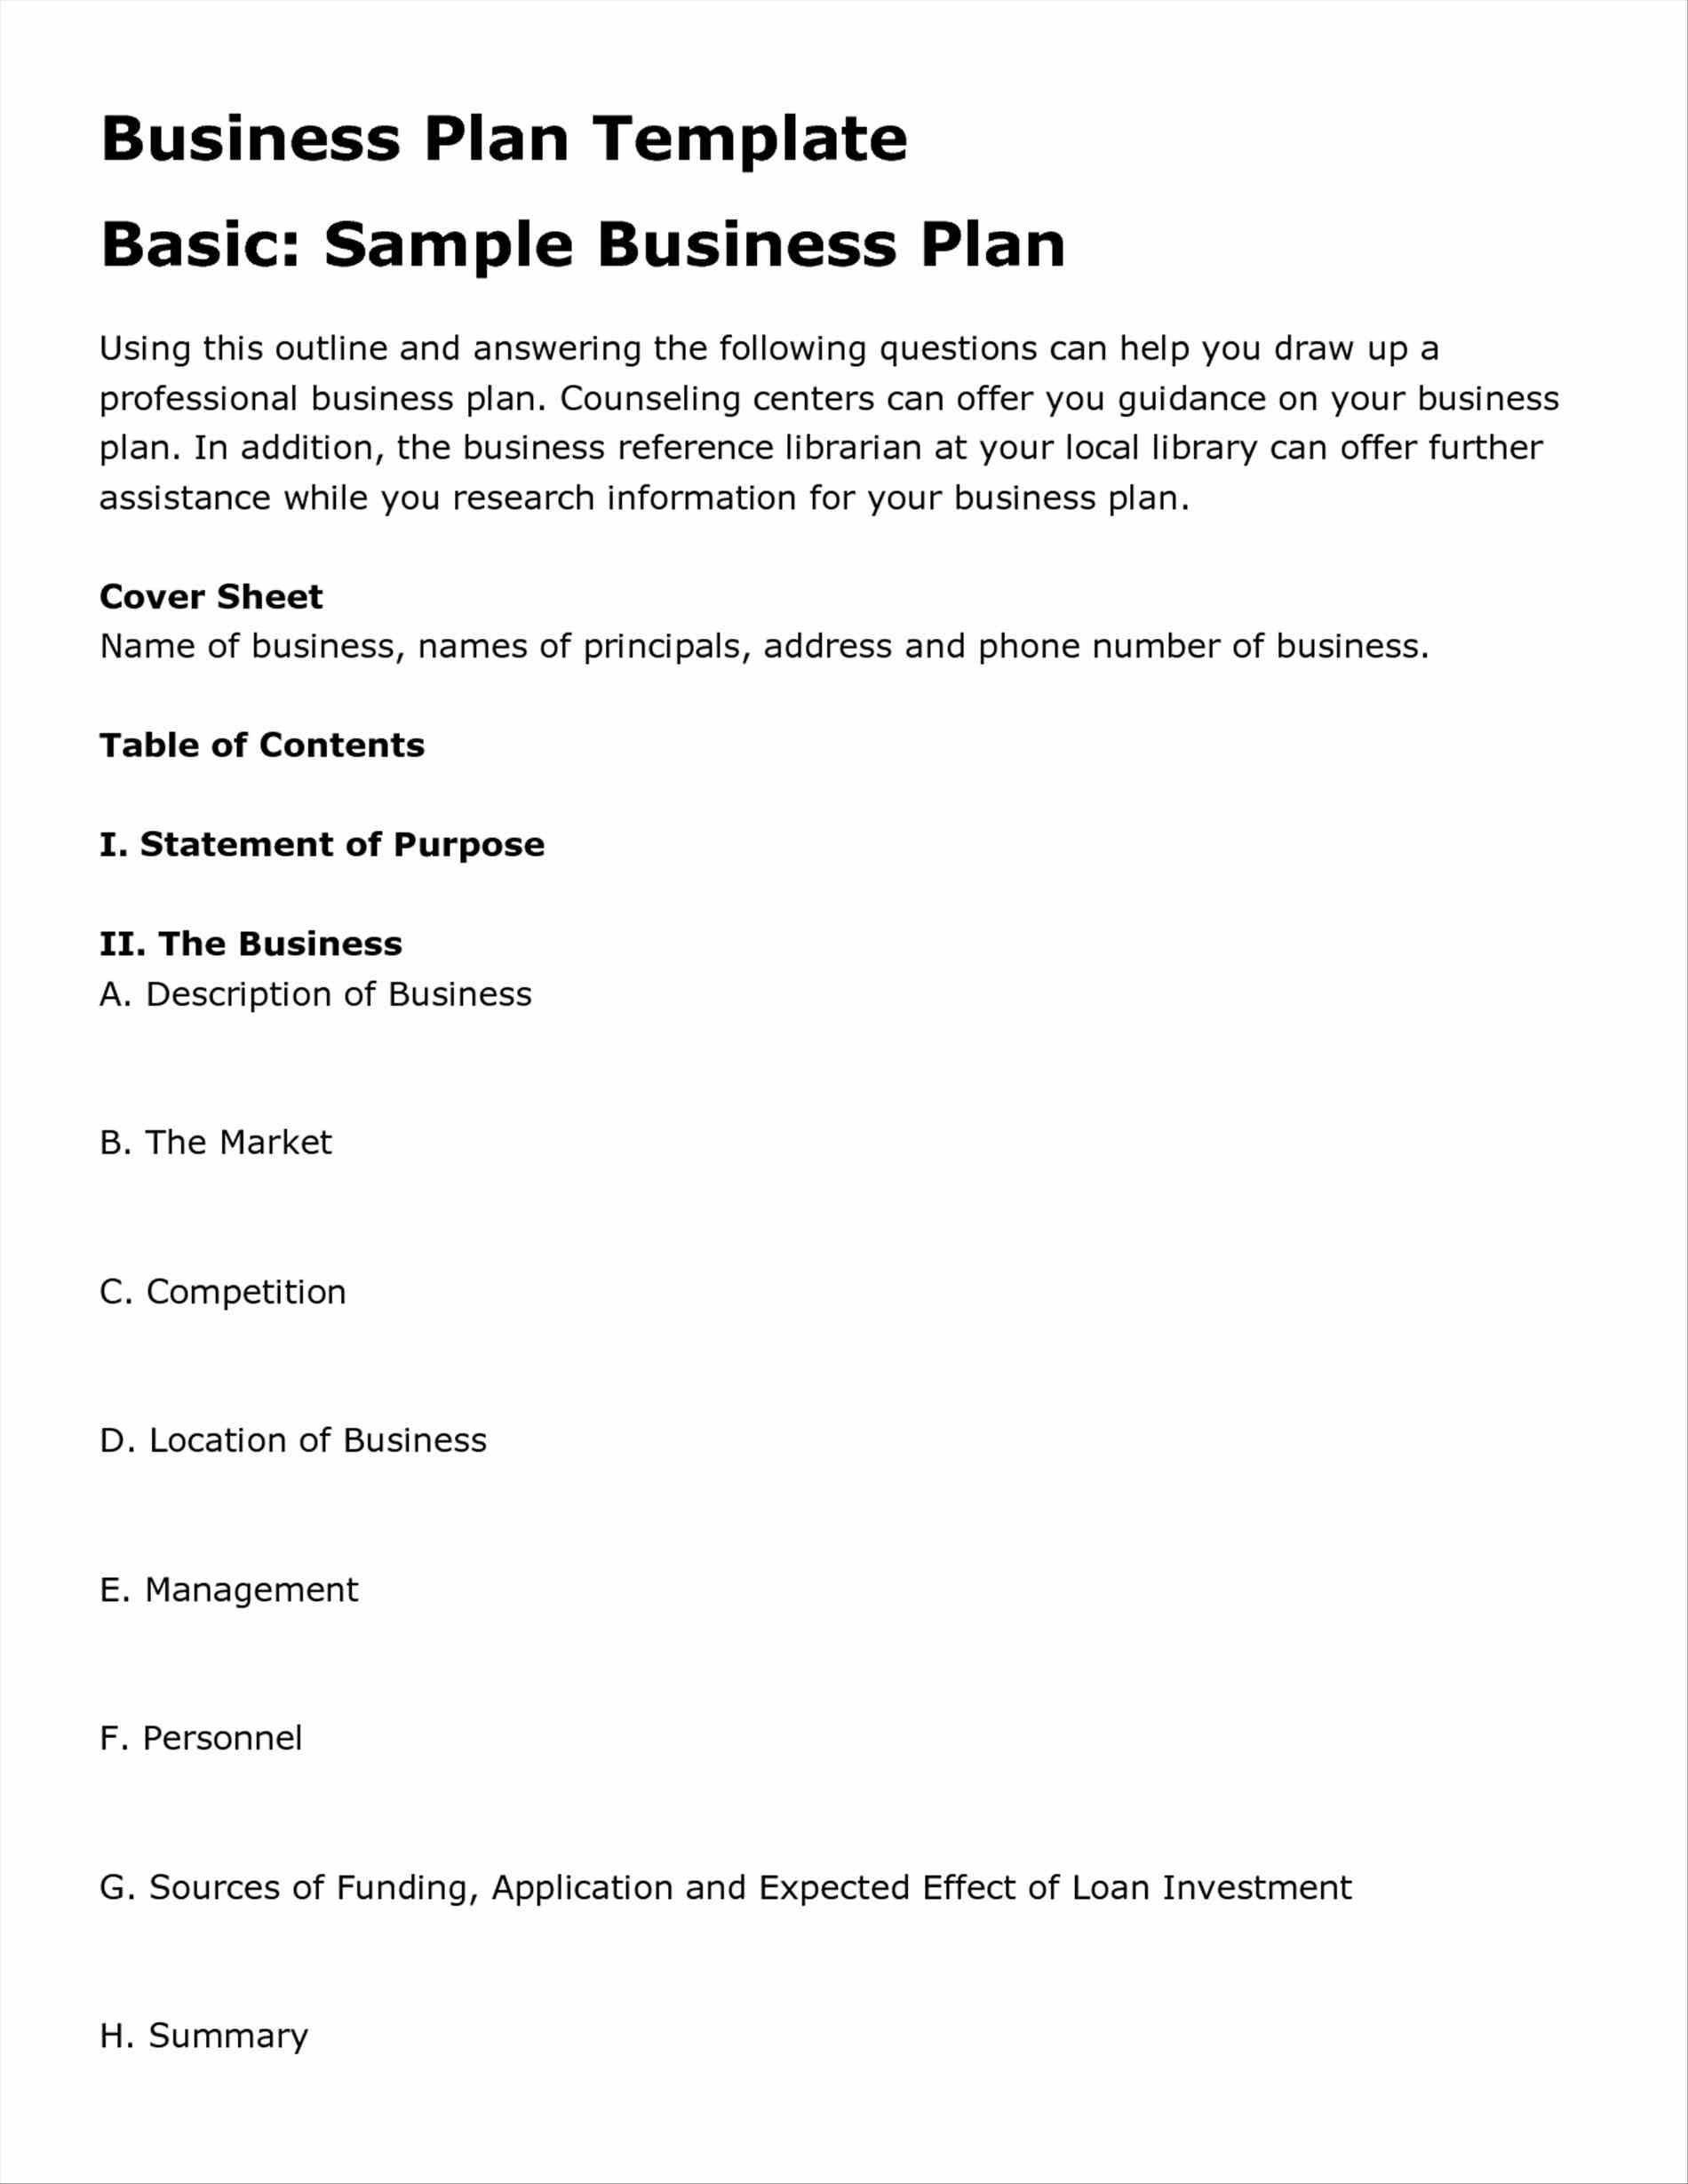 Business plan template restaurant templates in word excel pdf free business plan template restaurant templates in word excel pdf free cafe business plan template restaurant business plan templates in word excel wajeb Image collections